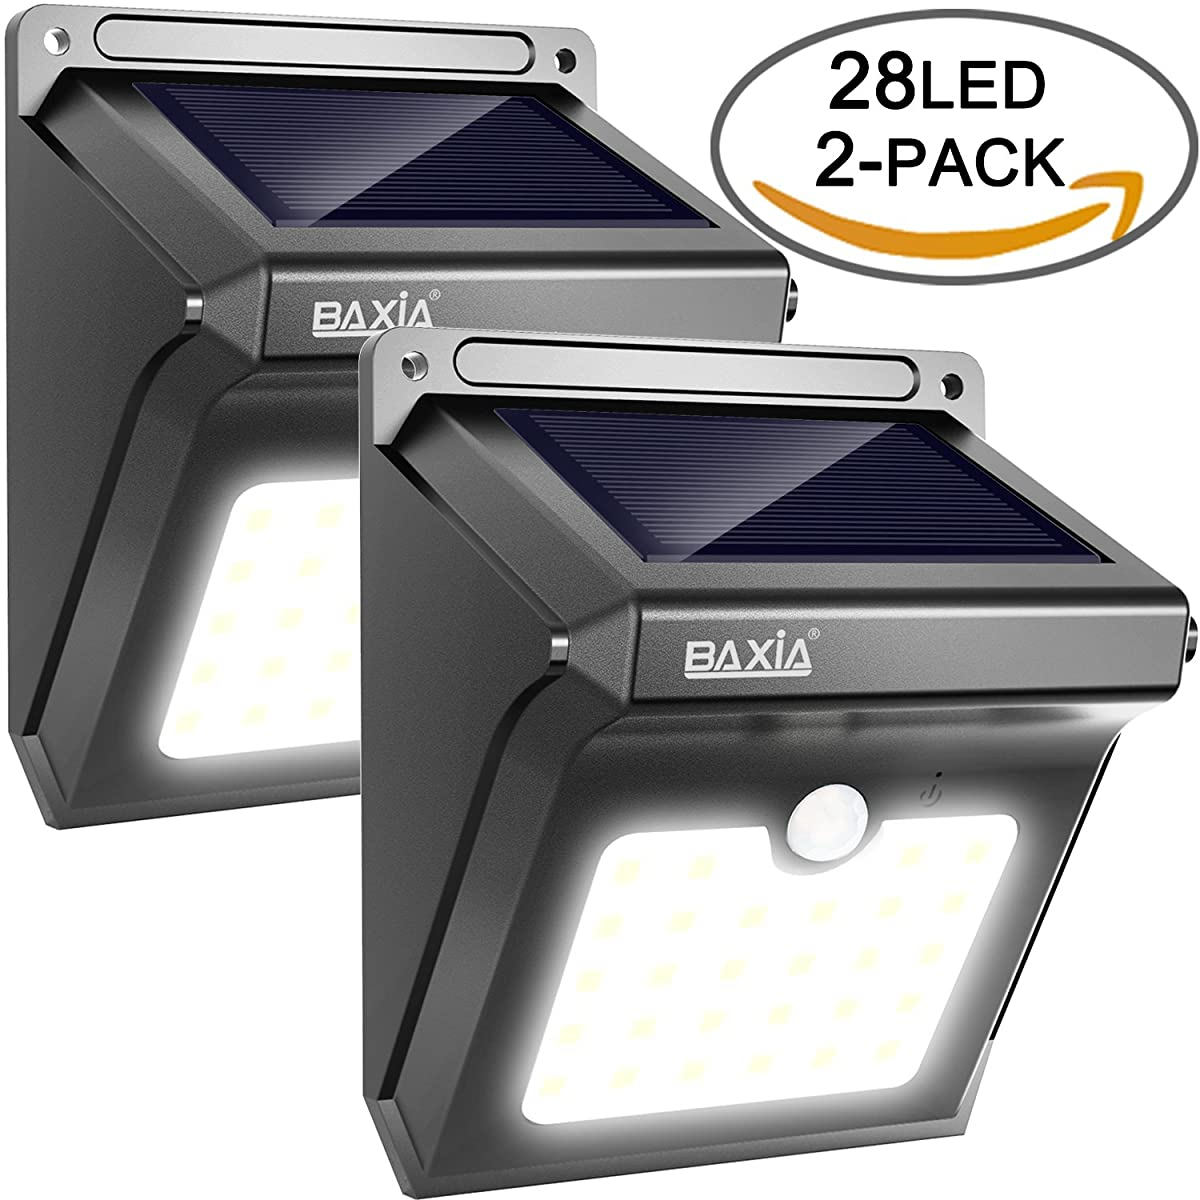 Upgraded 28 LED Solar Motion Sensor Security Wall Lights-BAXIA TECHNOLOGY Waterproof Wireless Bright LED Light for Outdoor Gate, Door, Driveway, Garden, Patio, Yard(2 Packs)